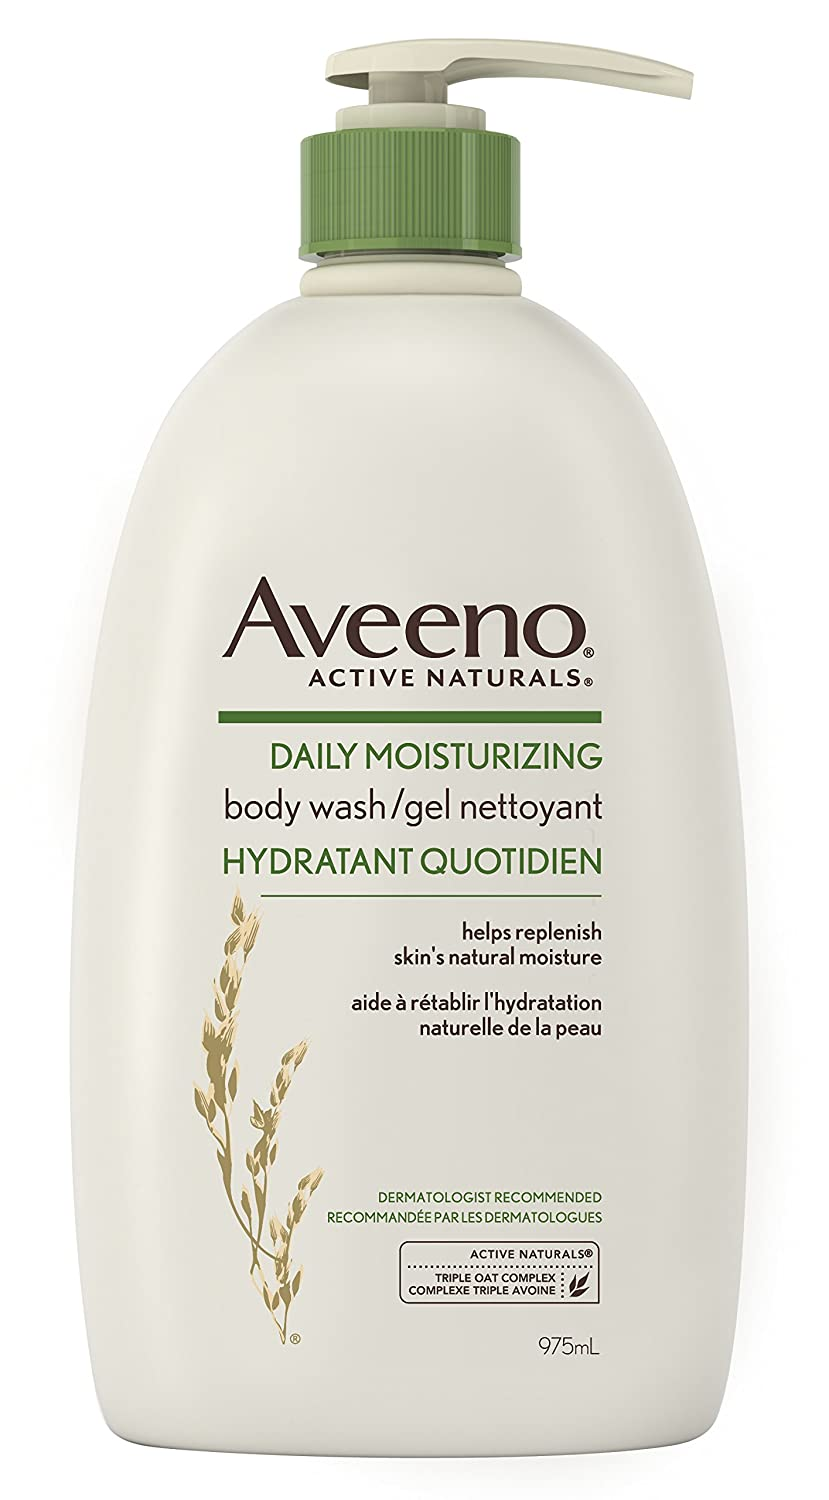 Aveeno Body Wash daily moisturizing yogurt vanilla and oats, 532ml Johnson and Johnson CA